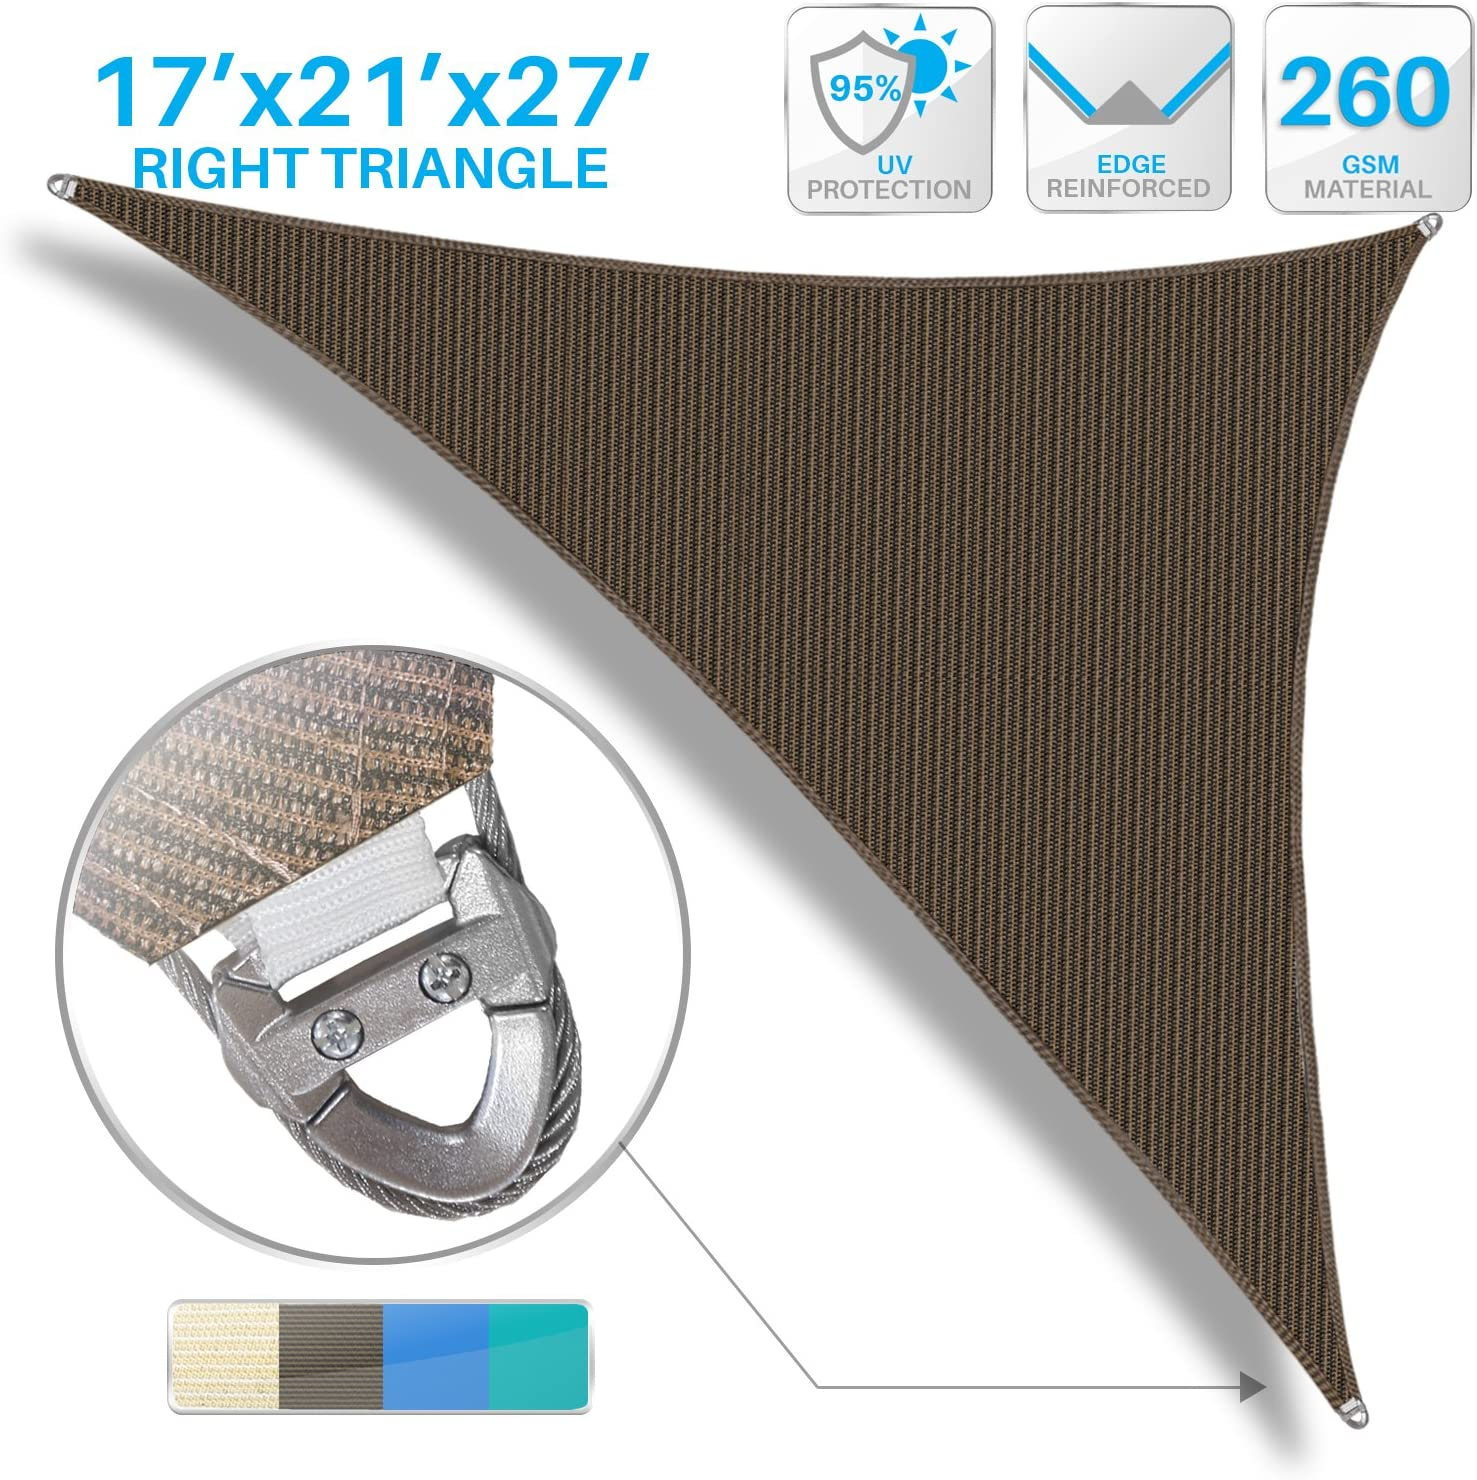 Patio Large Sun Shade Sail 17' x 21' x 27' Right Triangle Heavy Duty Strengthen Durable Outdoor Canopy UV Block Fabric A-Ring Design Metal Spring Reinforcement 7 Year Warranty -Brown 81vUtrz91PL